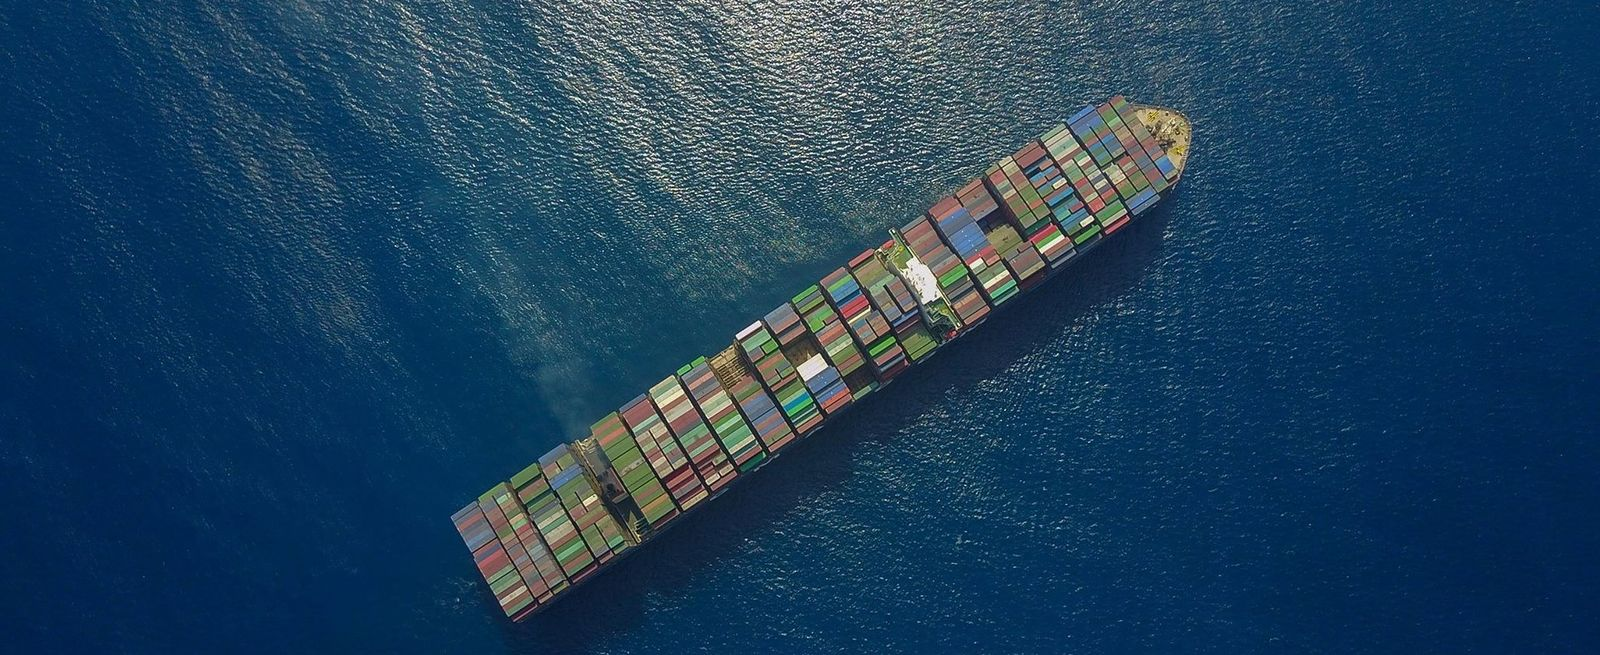 Aerial view ocean container ship